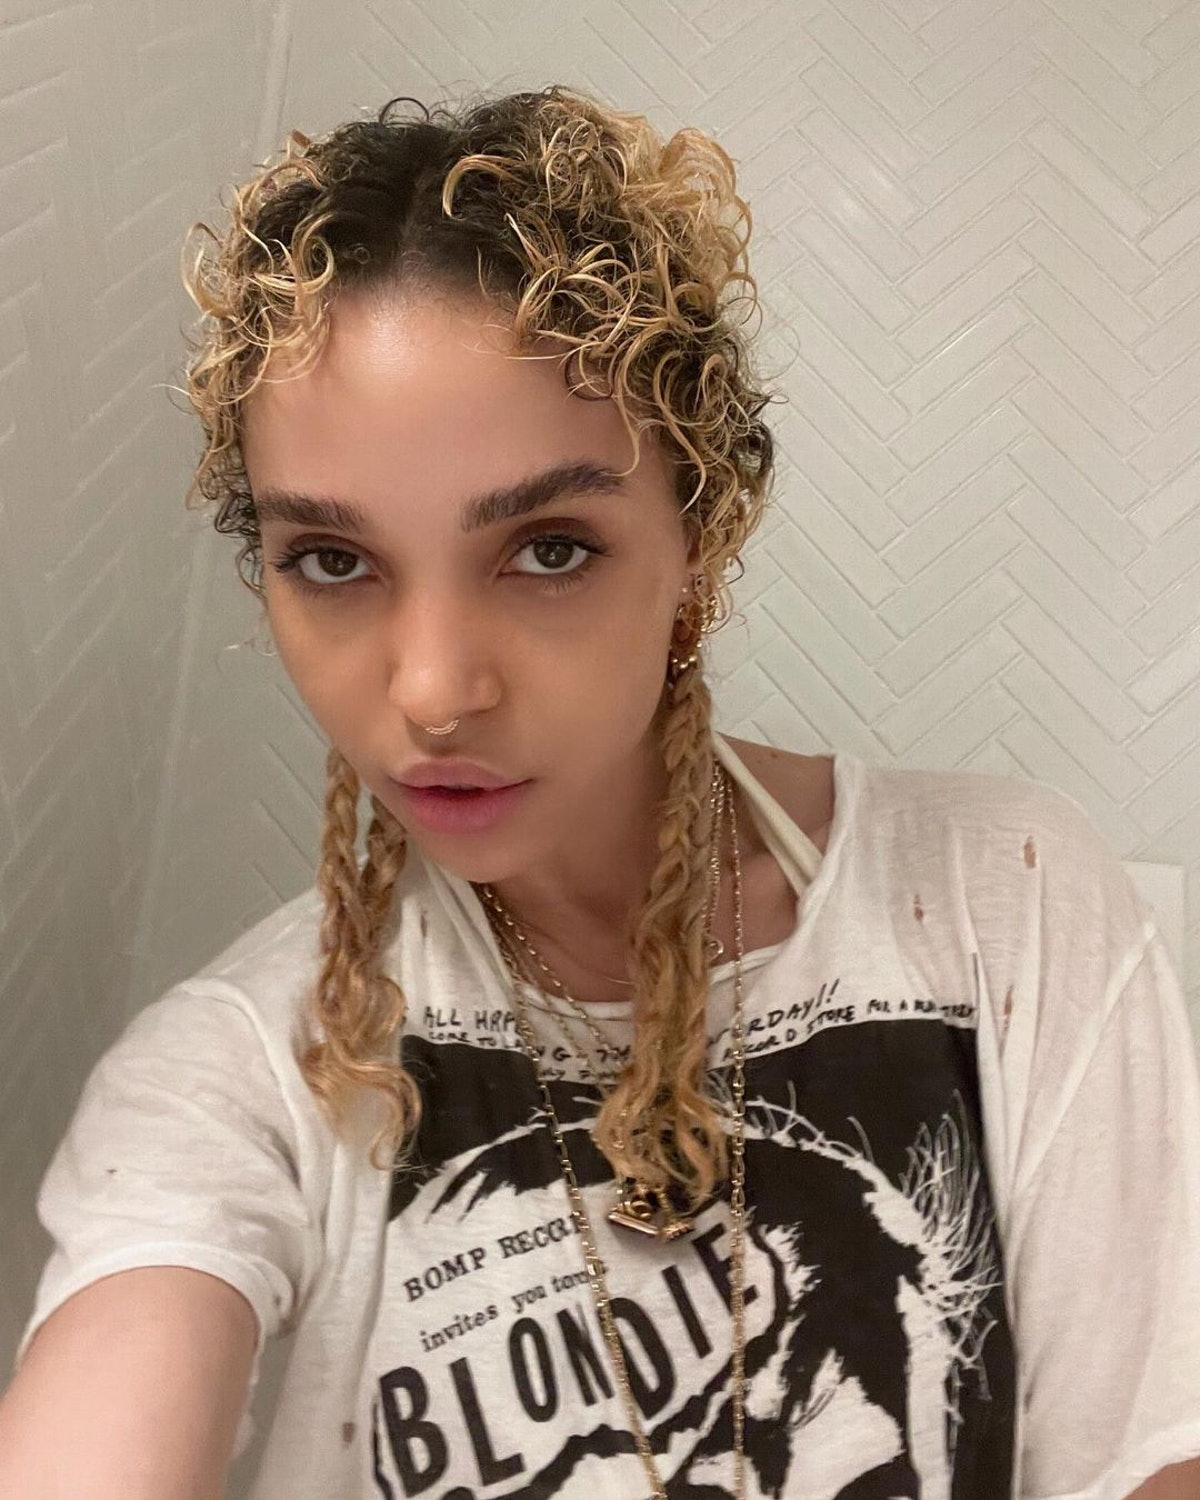 FKA Twigs wearing the braided pigtail style, a nostalgic look that's back and on-trend.